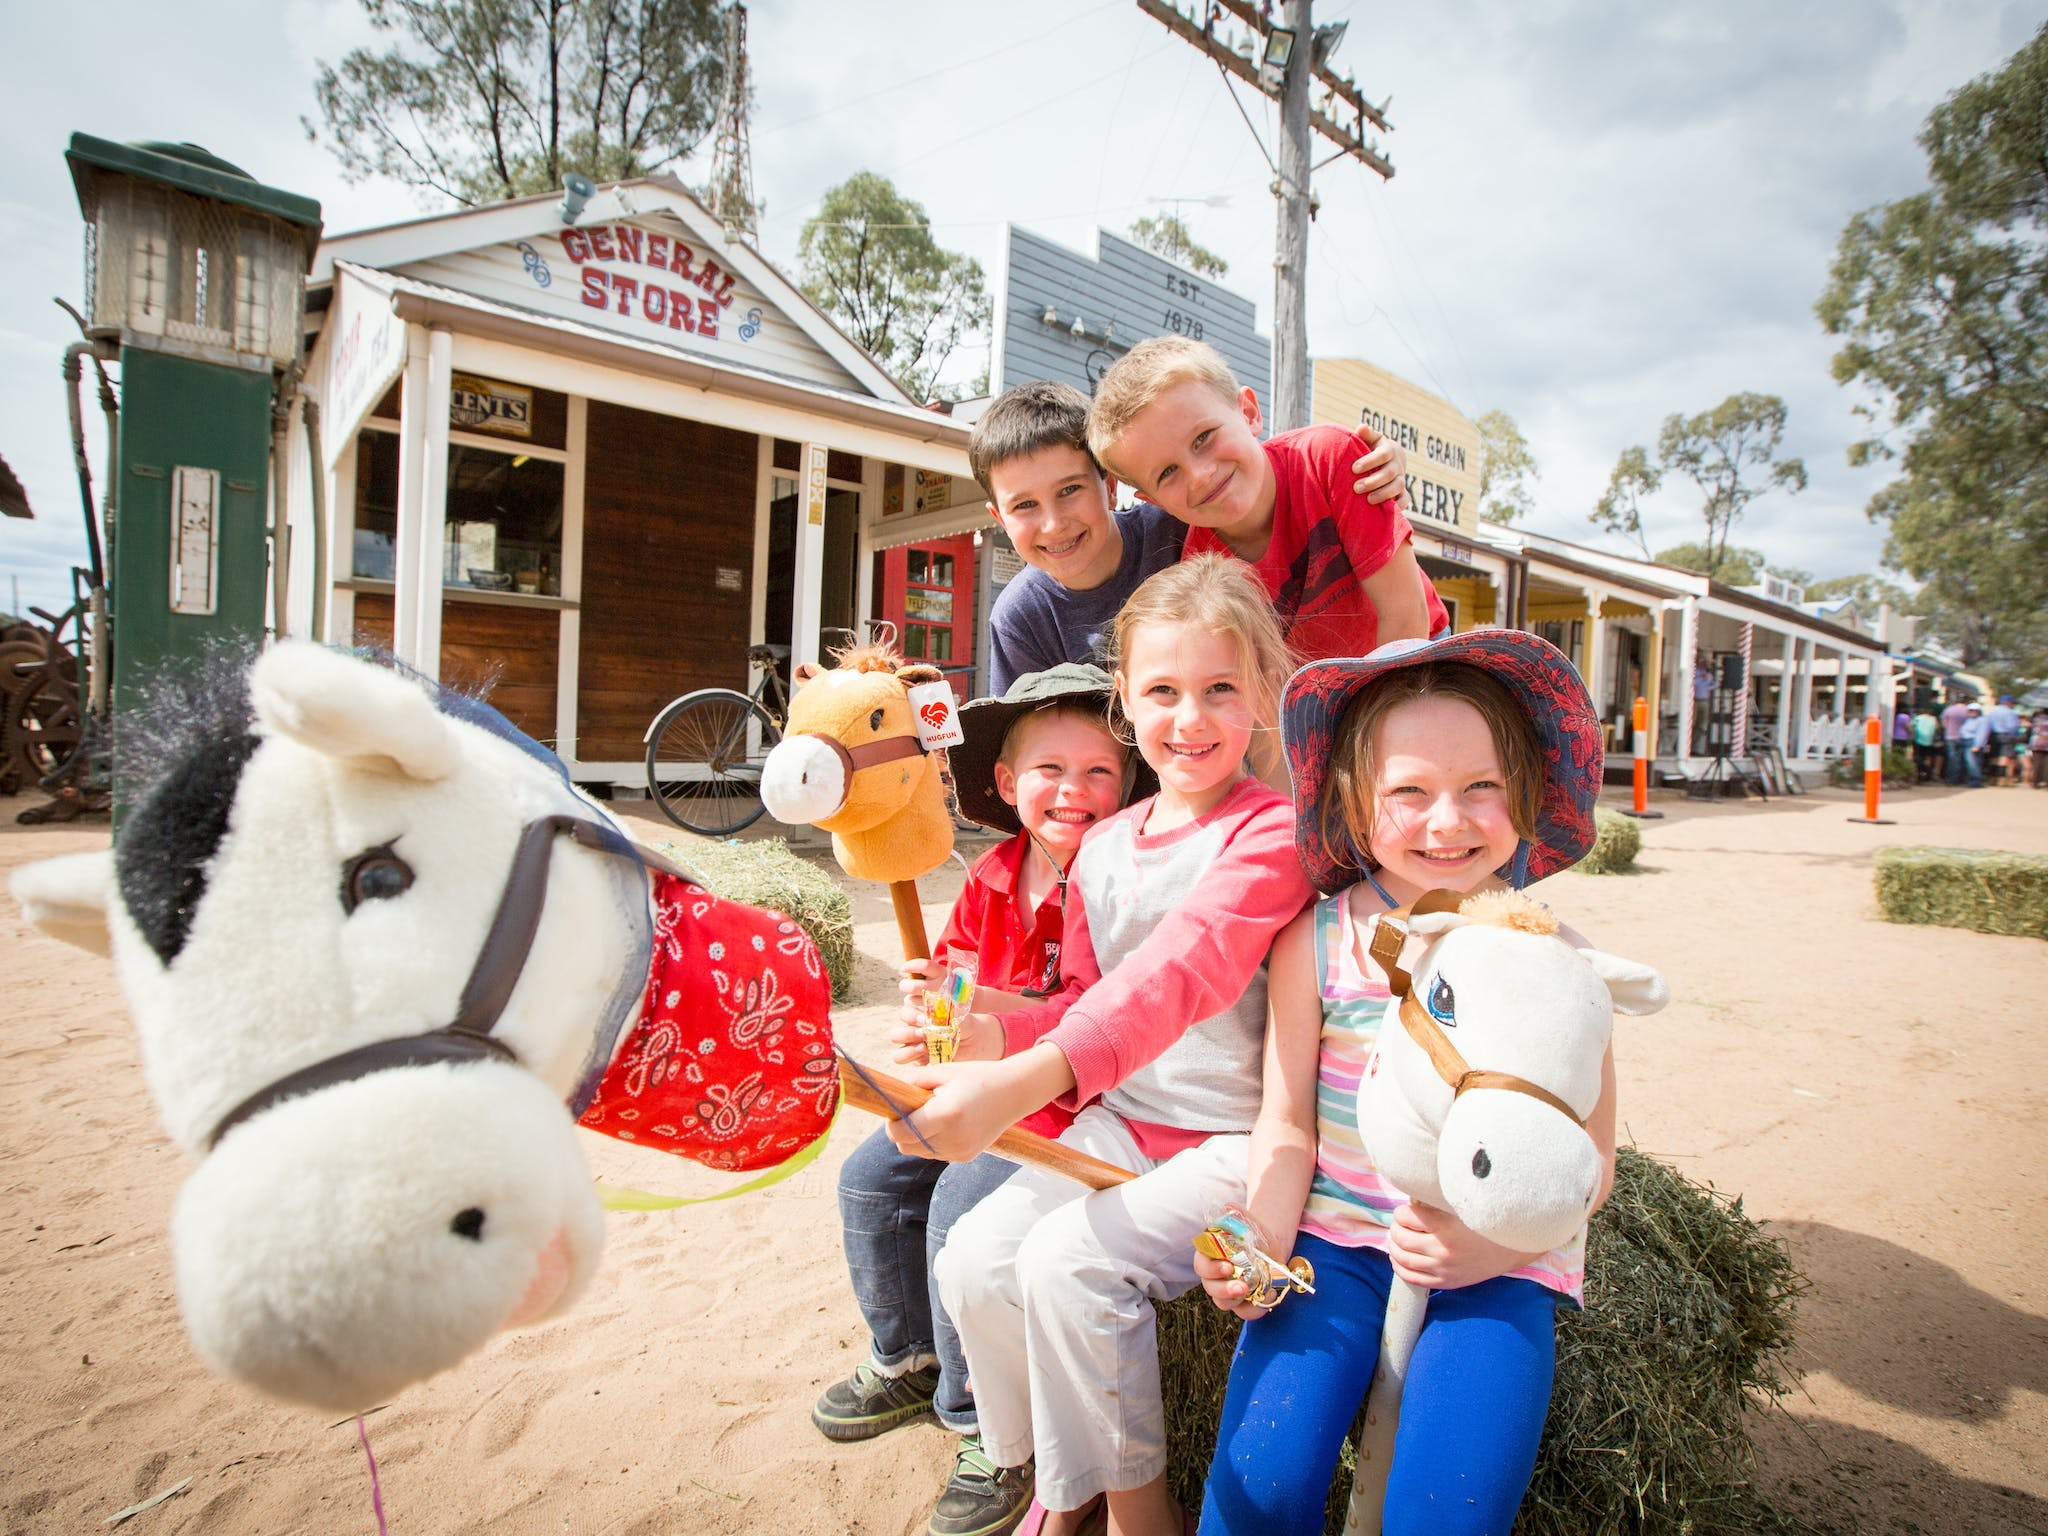 Family fun at events within the Miles Historical Village